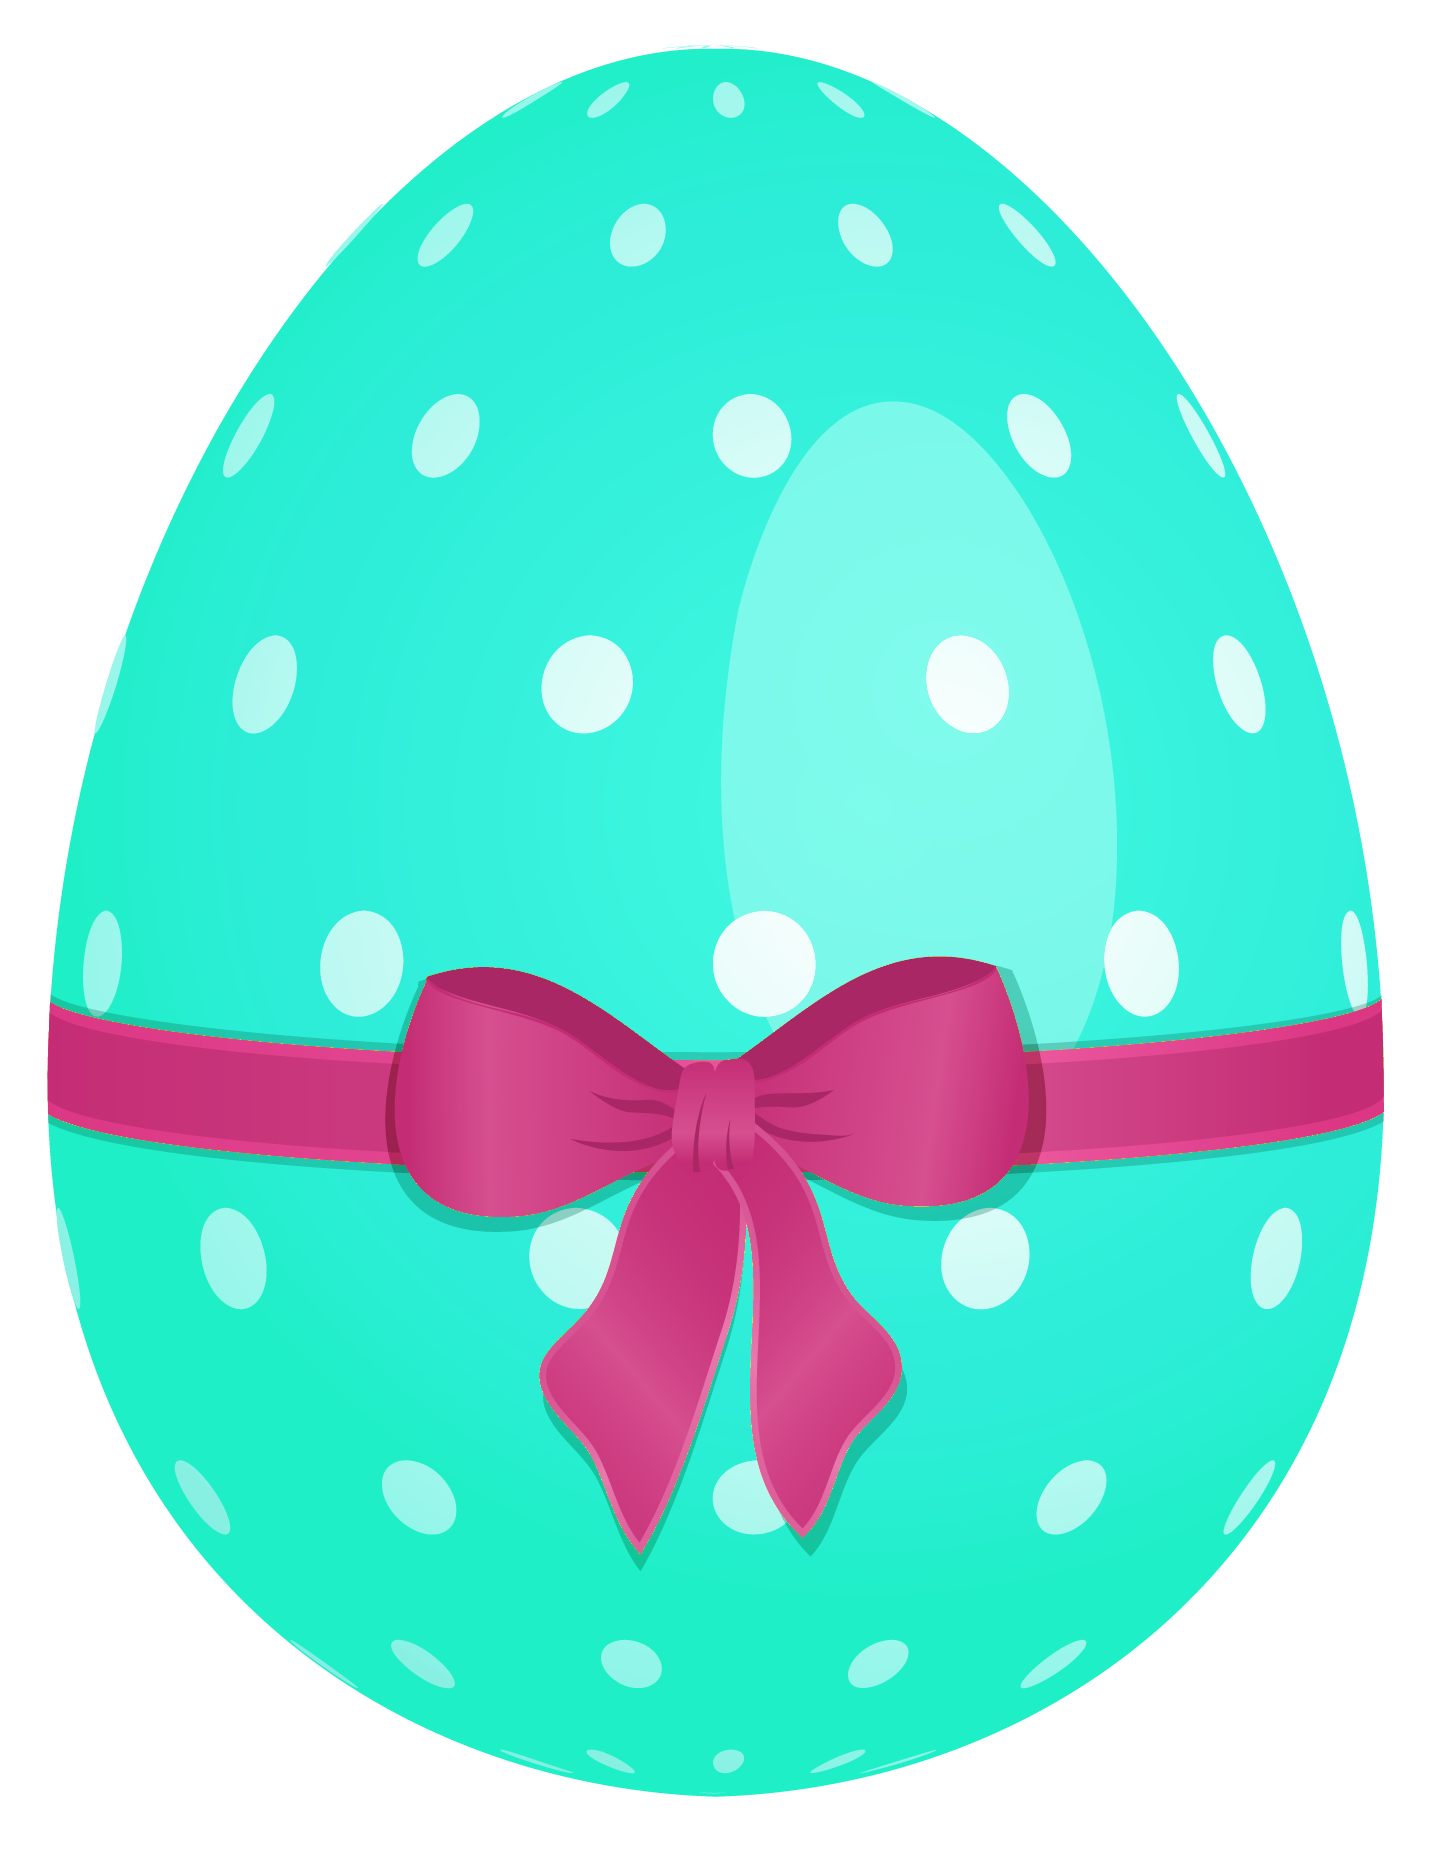 Easter egg free clipart jpg library download Cracked open easter egg free clipart - ClipartFest jpg library download